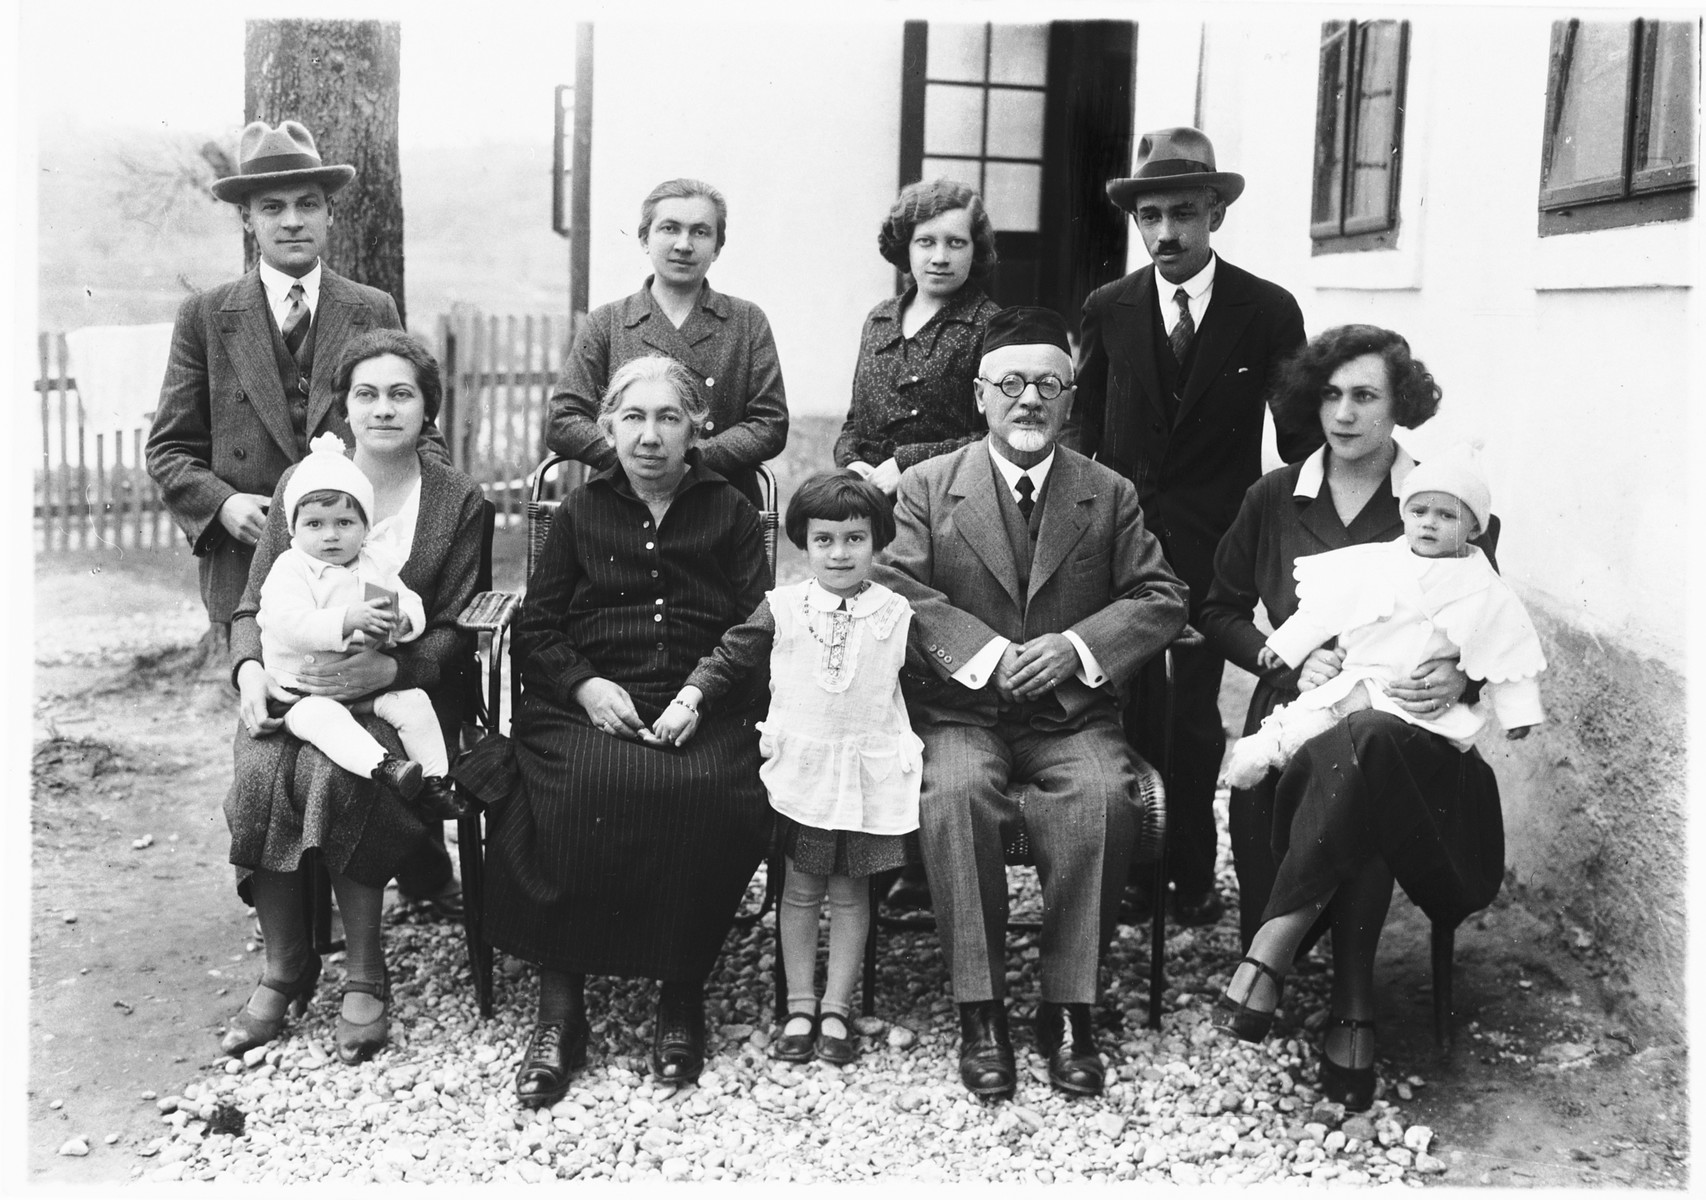 Members of the Deutsch family pose outside their home in Ludbreg, Croatia, which also functioned as the local synagogue.  Pictured sitting from left to right are: Blanka (Deutsch) Apler with her daughter Vera, Katarina Deutsch, Zdenka Apler, Rabbi Leopold Deutsch and Ida Deutsch with her daughter Edita.  Standing from left to right are: Rudi Apler, Giza Deutsch, Silva Deutsch and Erne Deutsch.